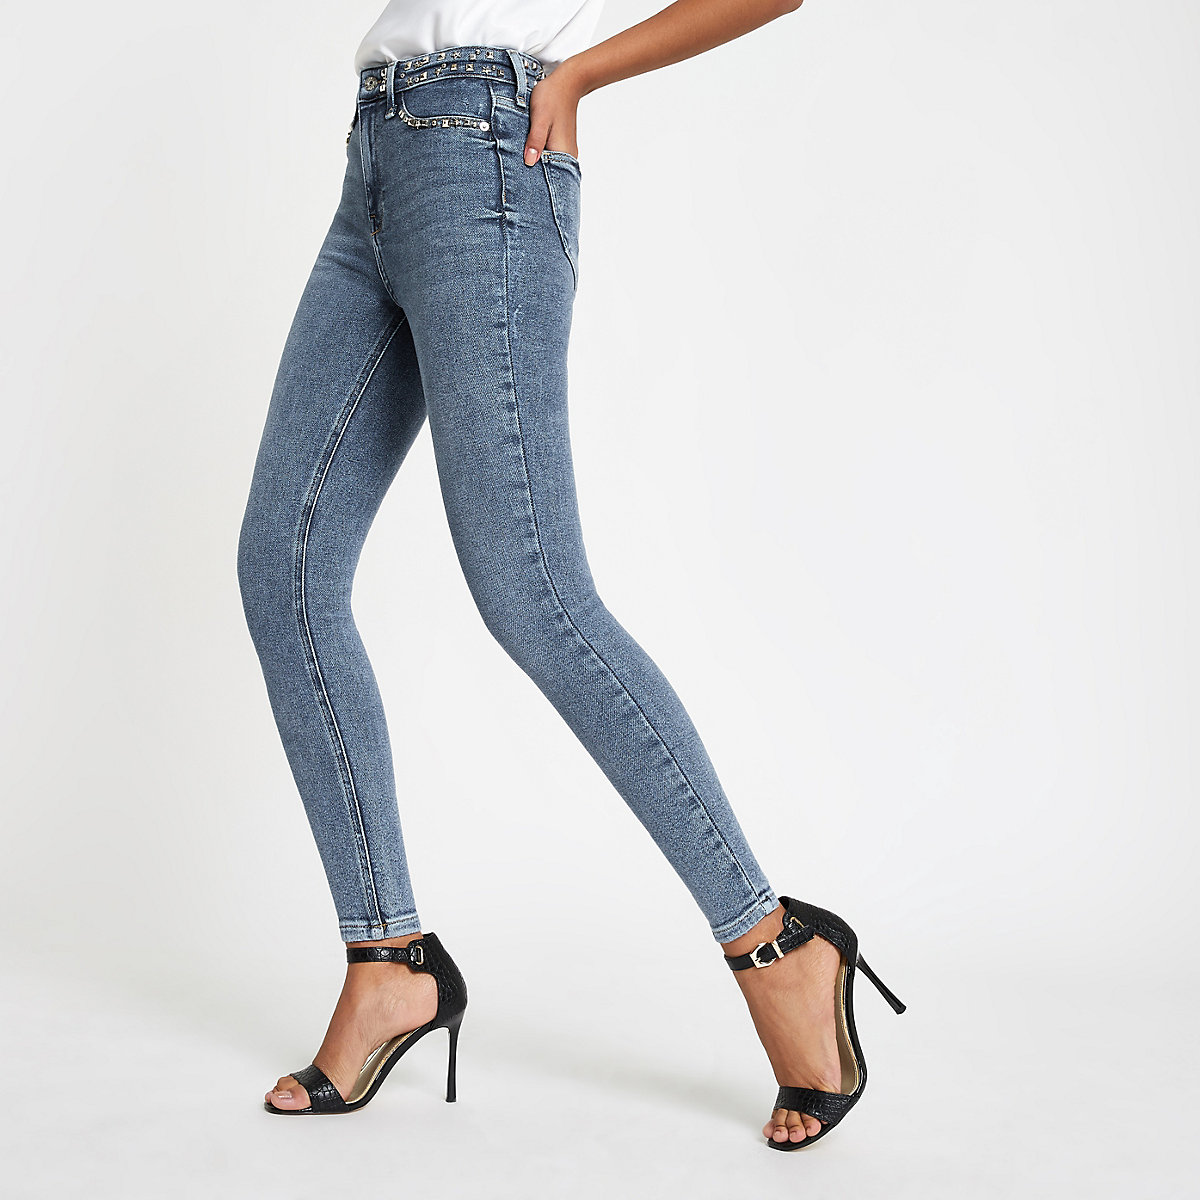 Blue Hailey high rise stud jeans